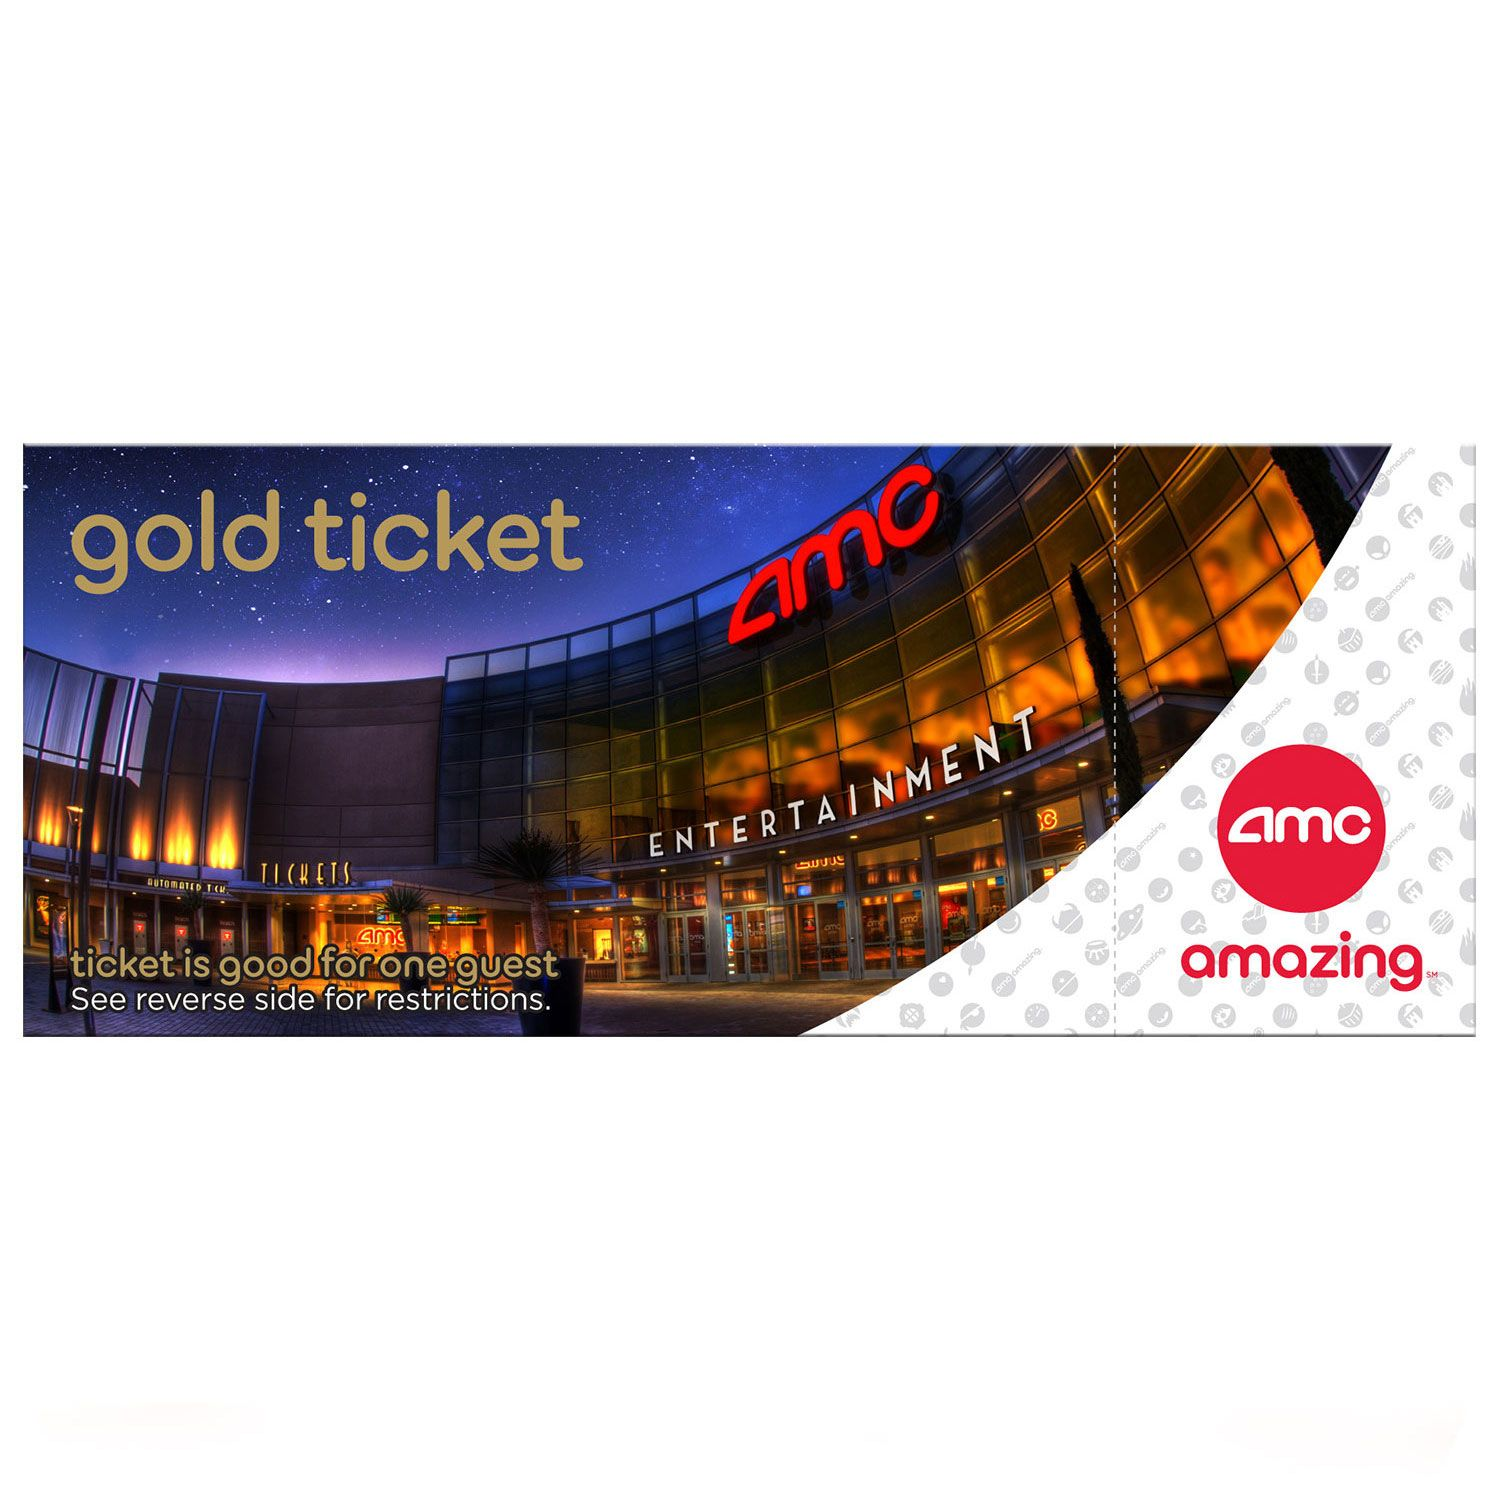 amc_gold_eticket.jpg